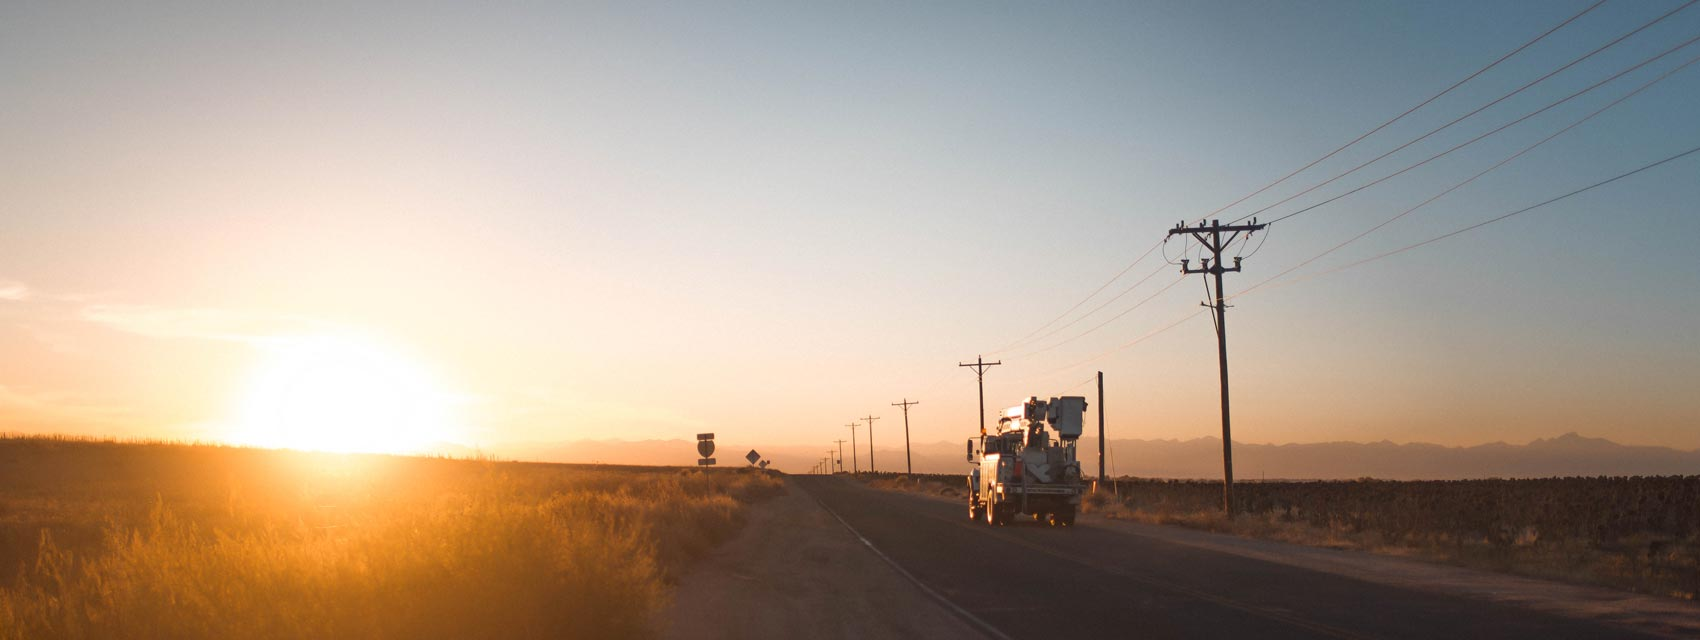 Truck driving down road in sunrise